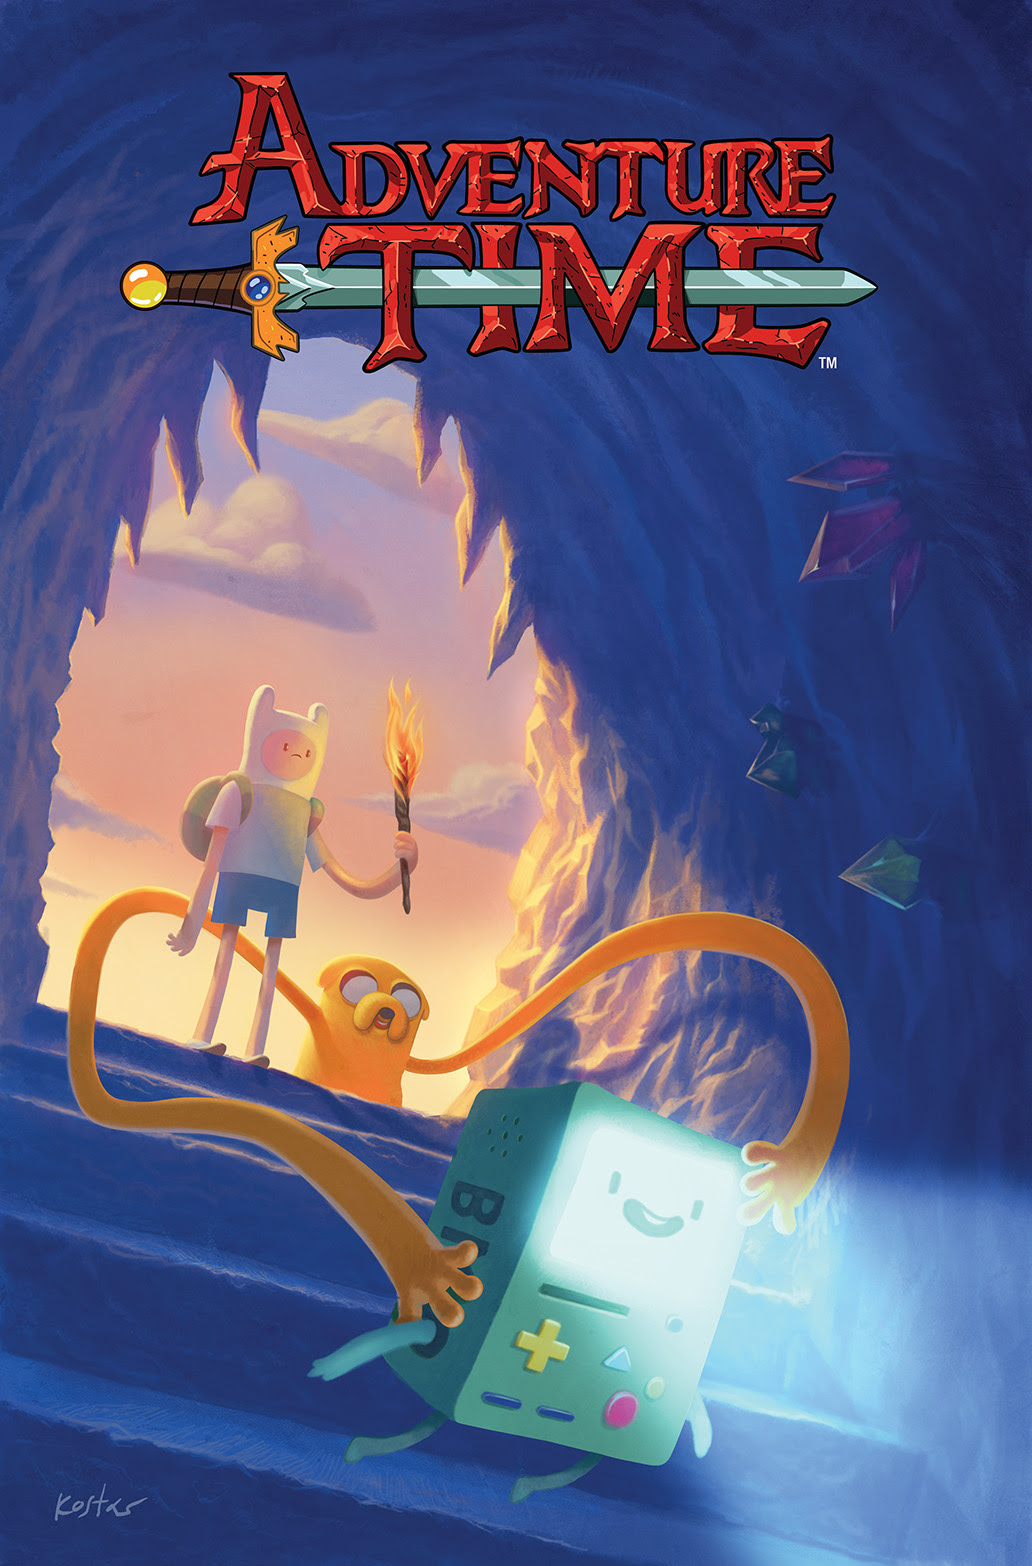 ADVENTURE TIME #32 Cover A by Kostas Kiriakakis